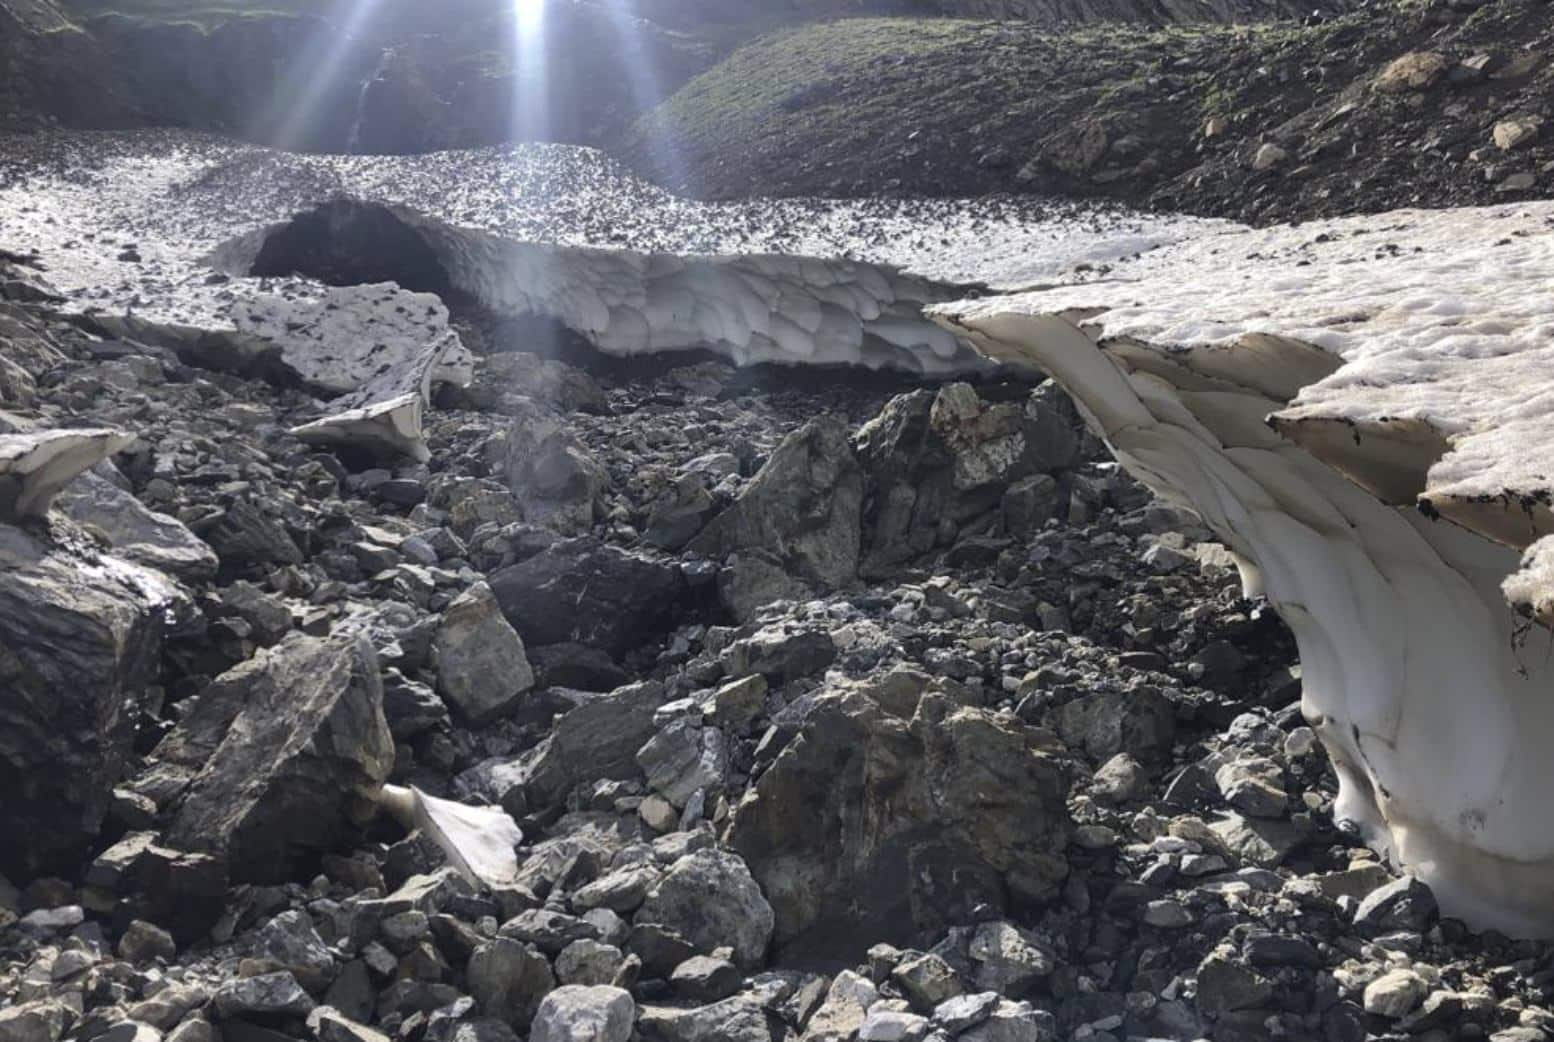 3D models from drones to study receding glaciers in Pyrenees mountains